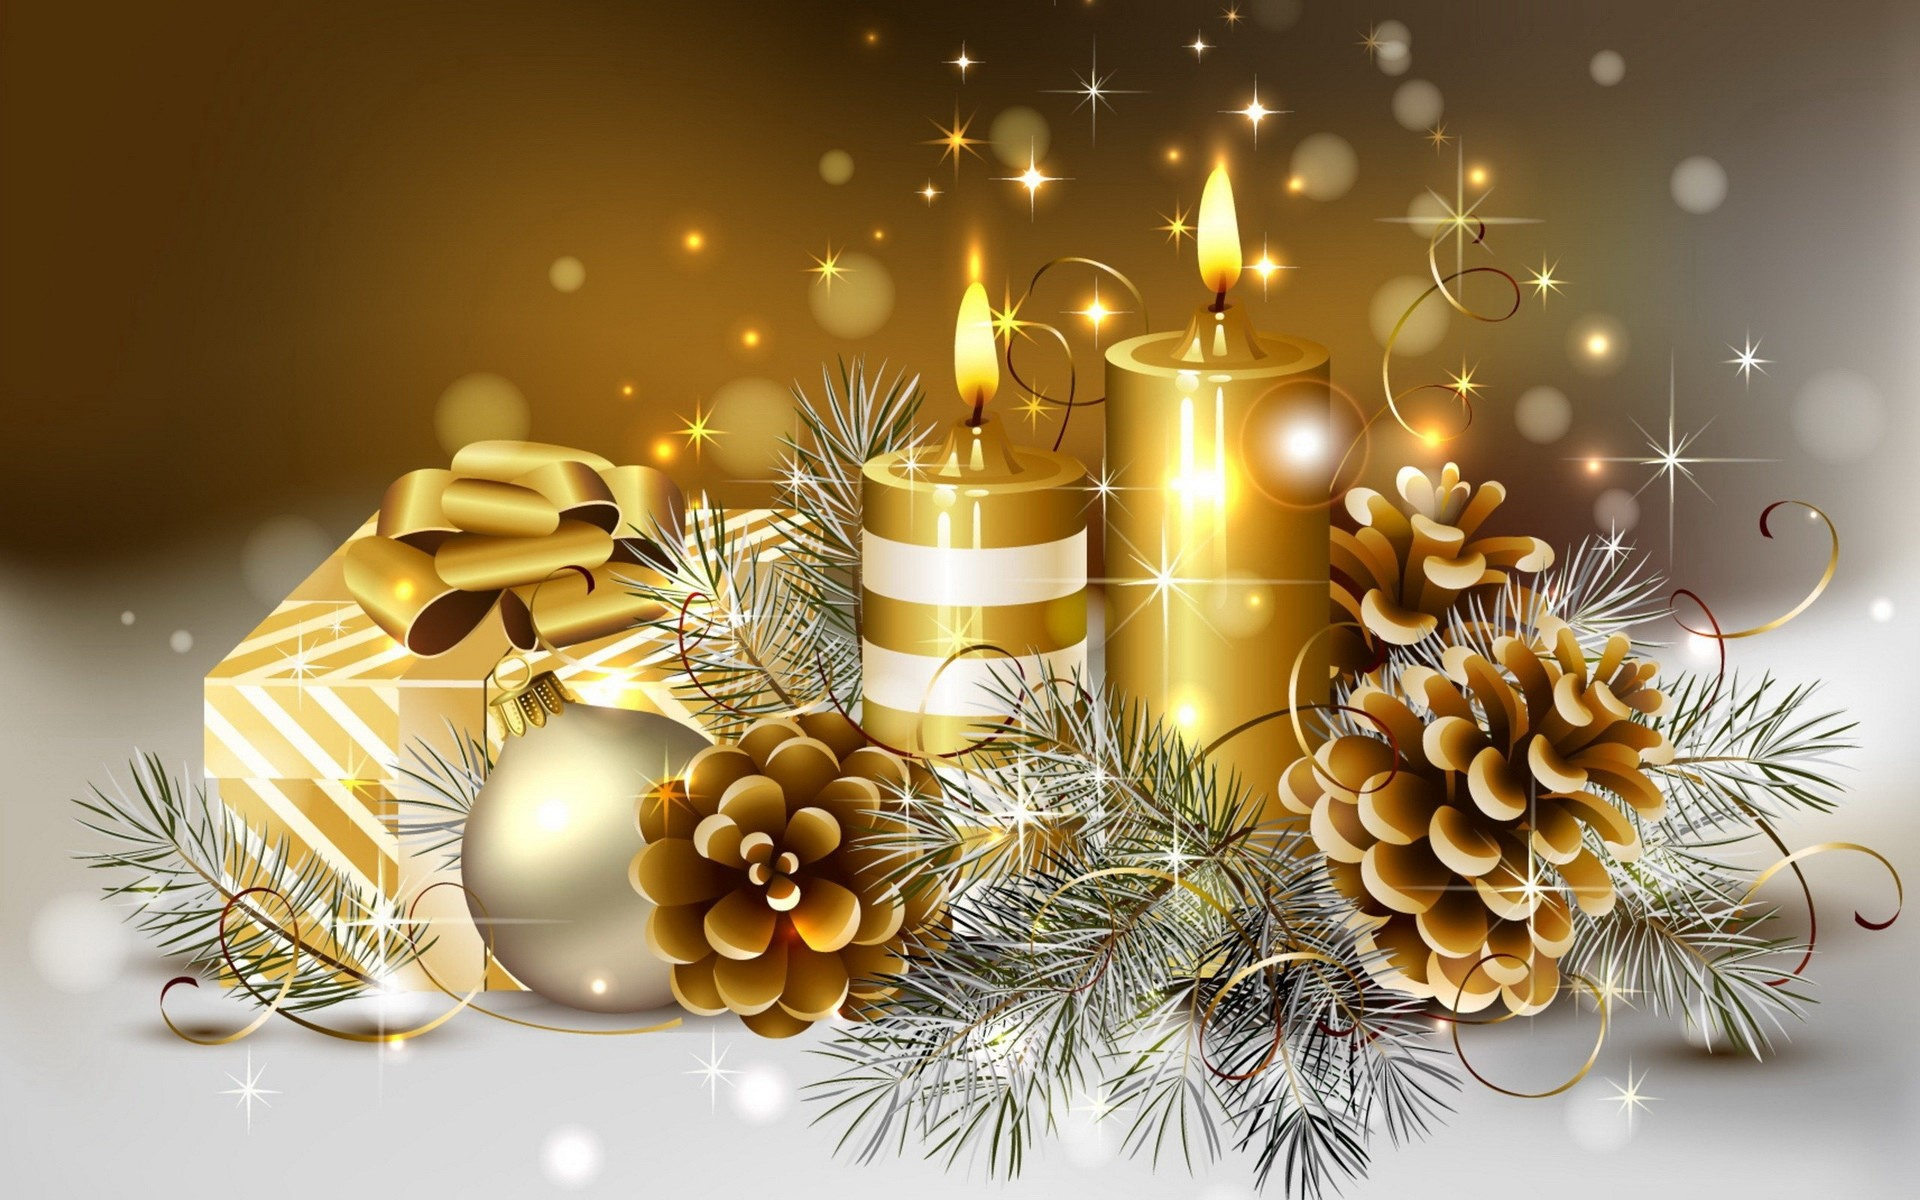 Christmas Pictures for Desktop Background 65 images 1920x1200